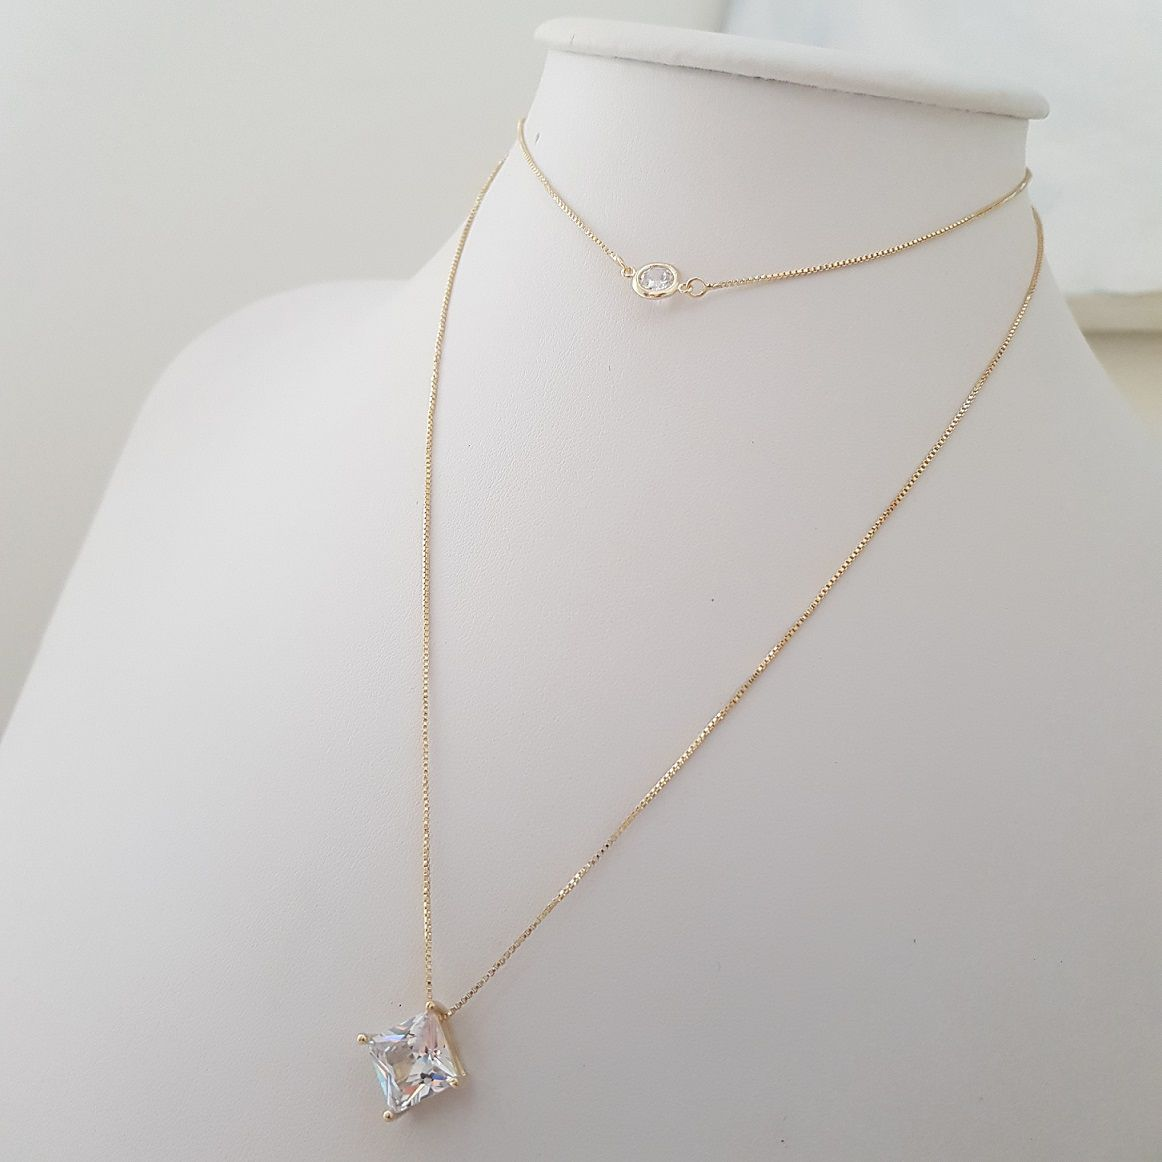 Colar Duplo com Chocker Zircônias e Cristais 4413